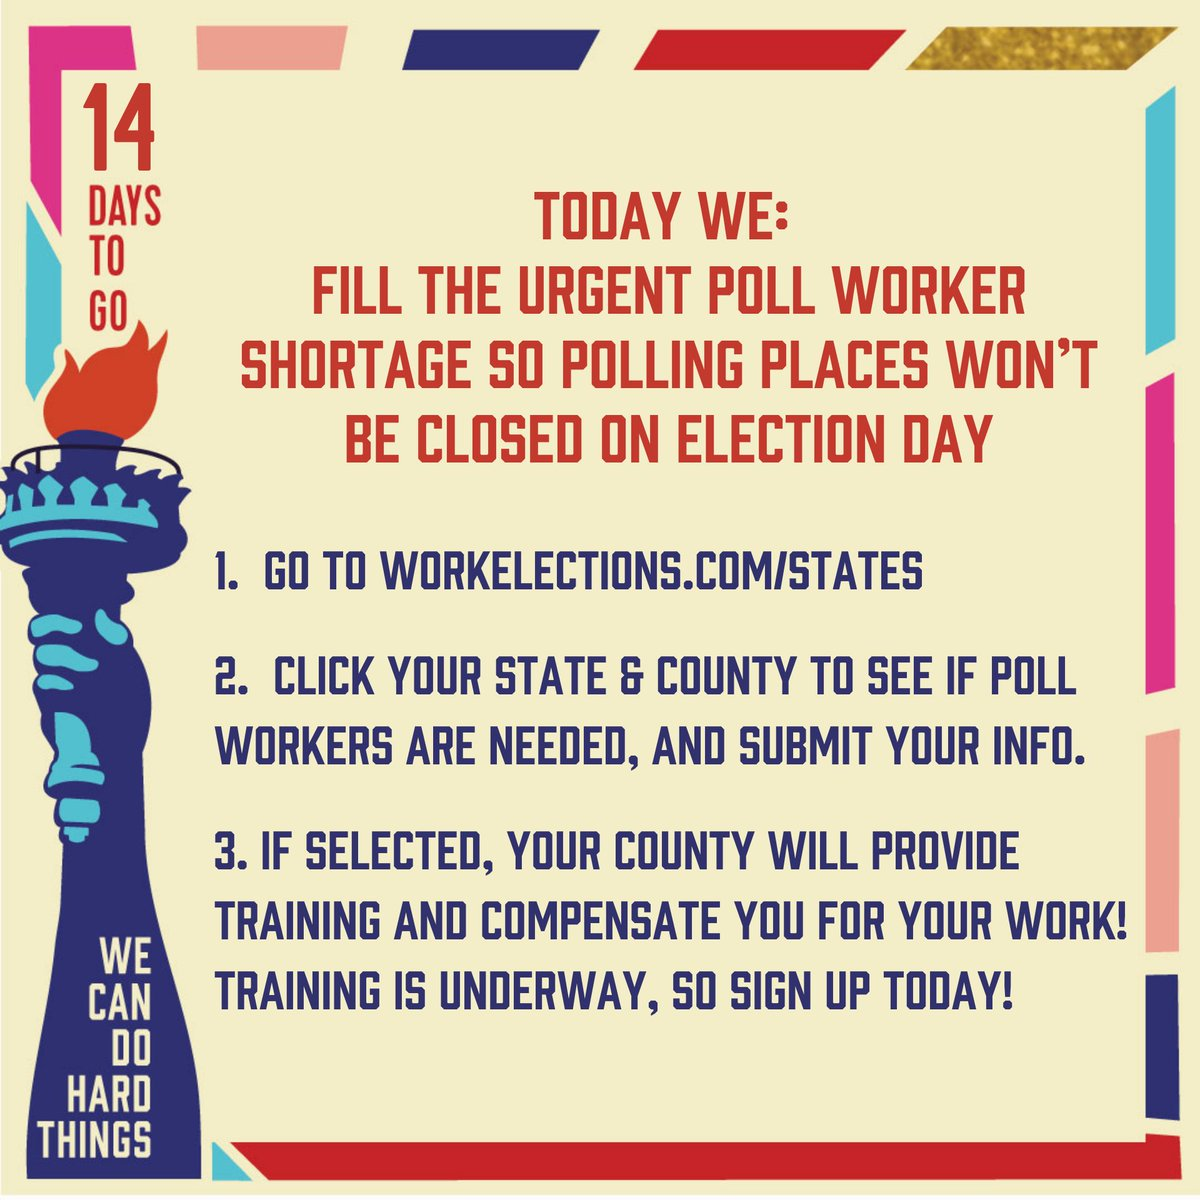 There is still a shortage of poll workers in almost every state. Today, check out https://t.co/fgyDv9VGXL to learn about the opportunities to serve in your community and join the critical infrastructure that will keep our polling places open and our democracy thriving! 💖 https://t.co/8rPZw2sCy3